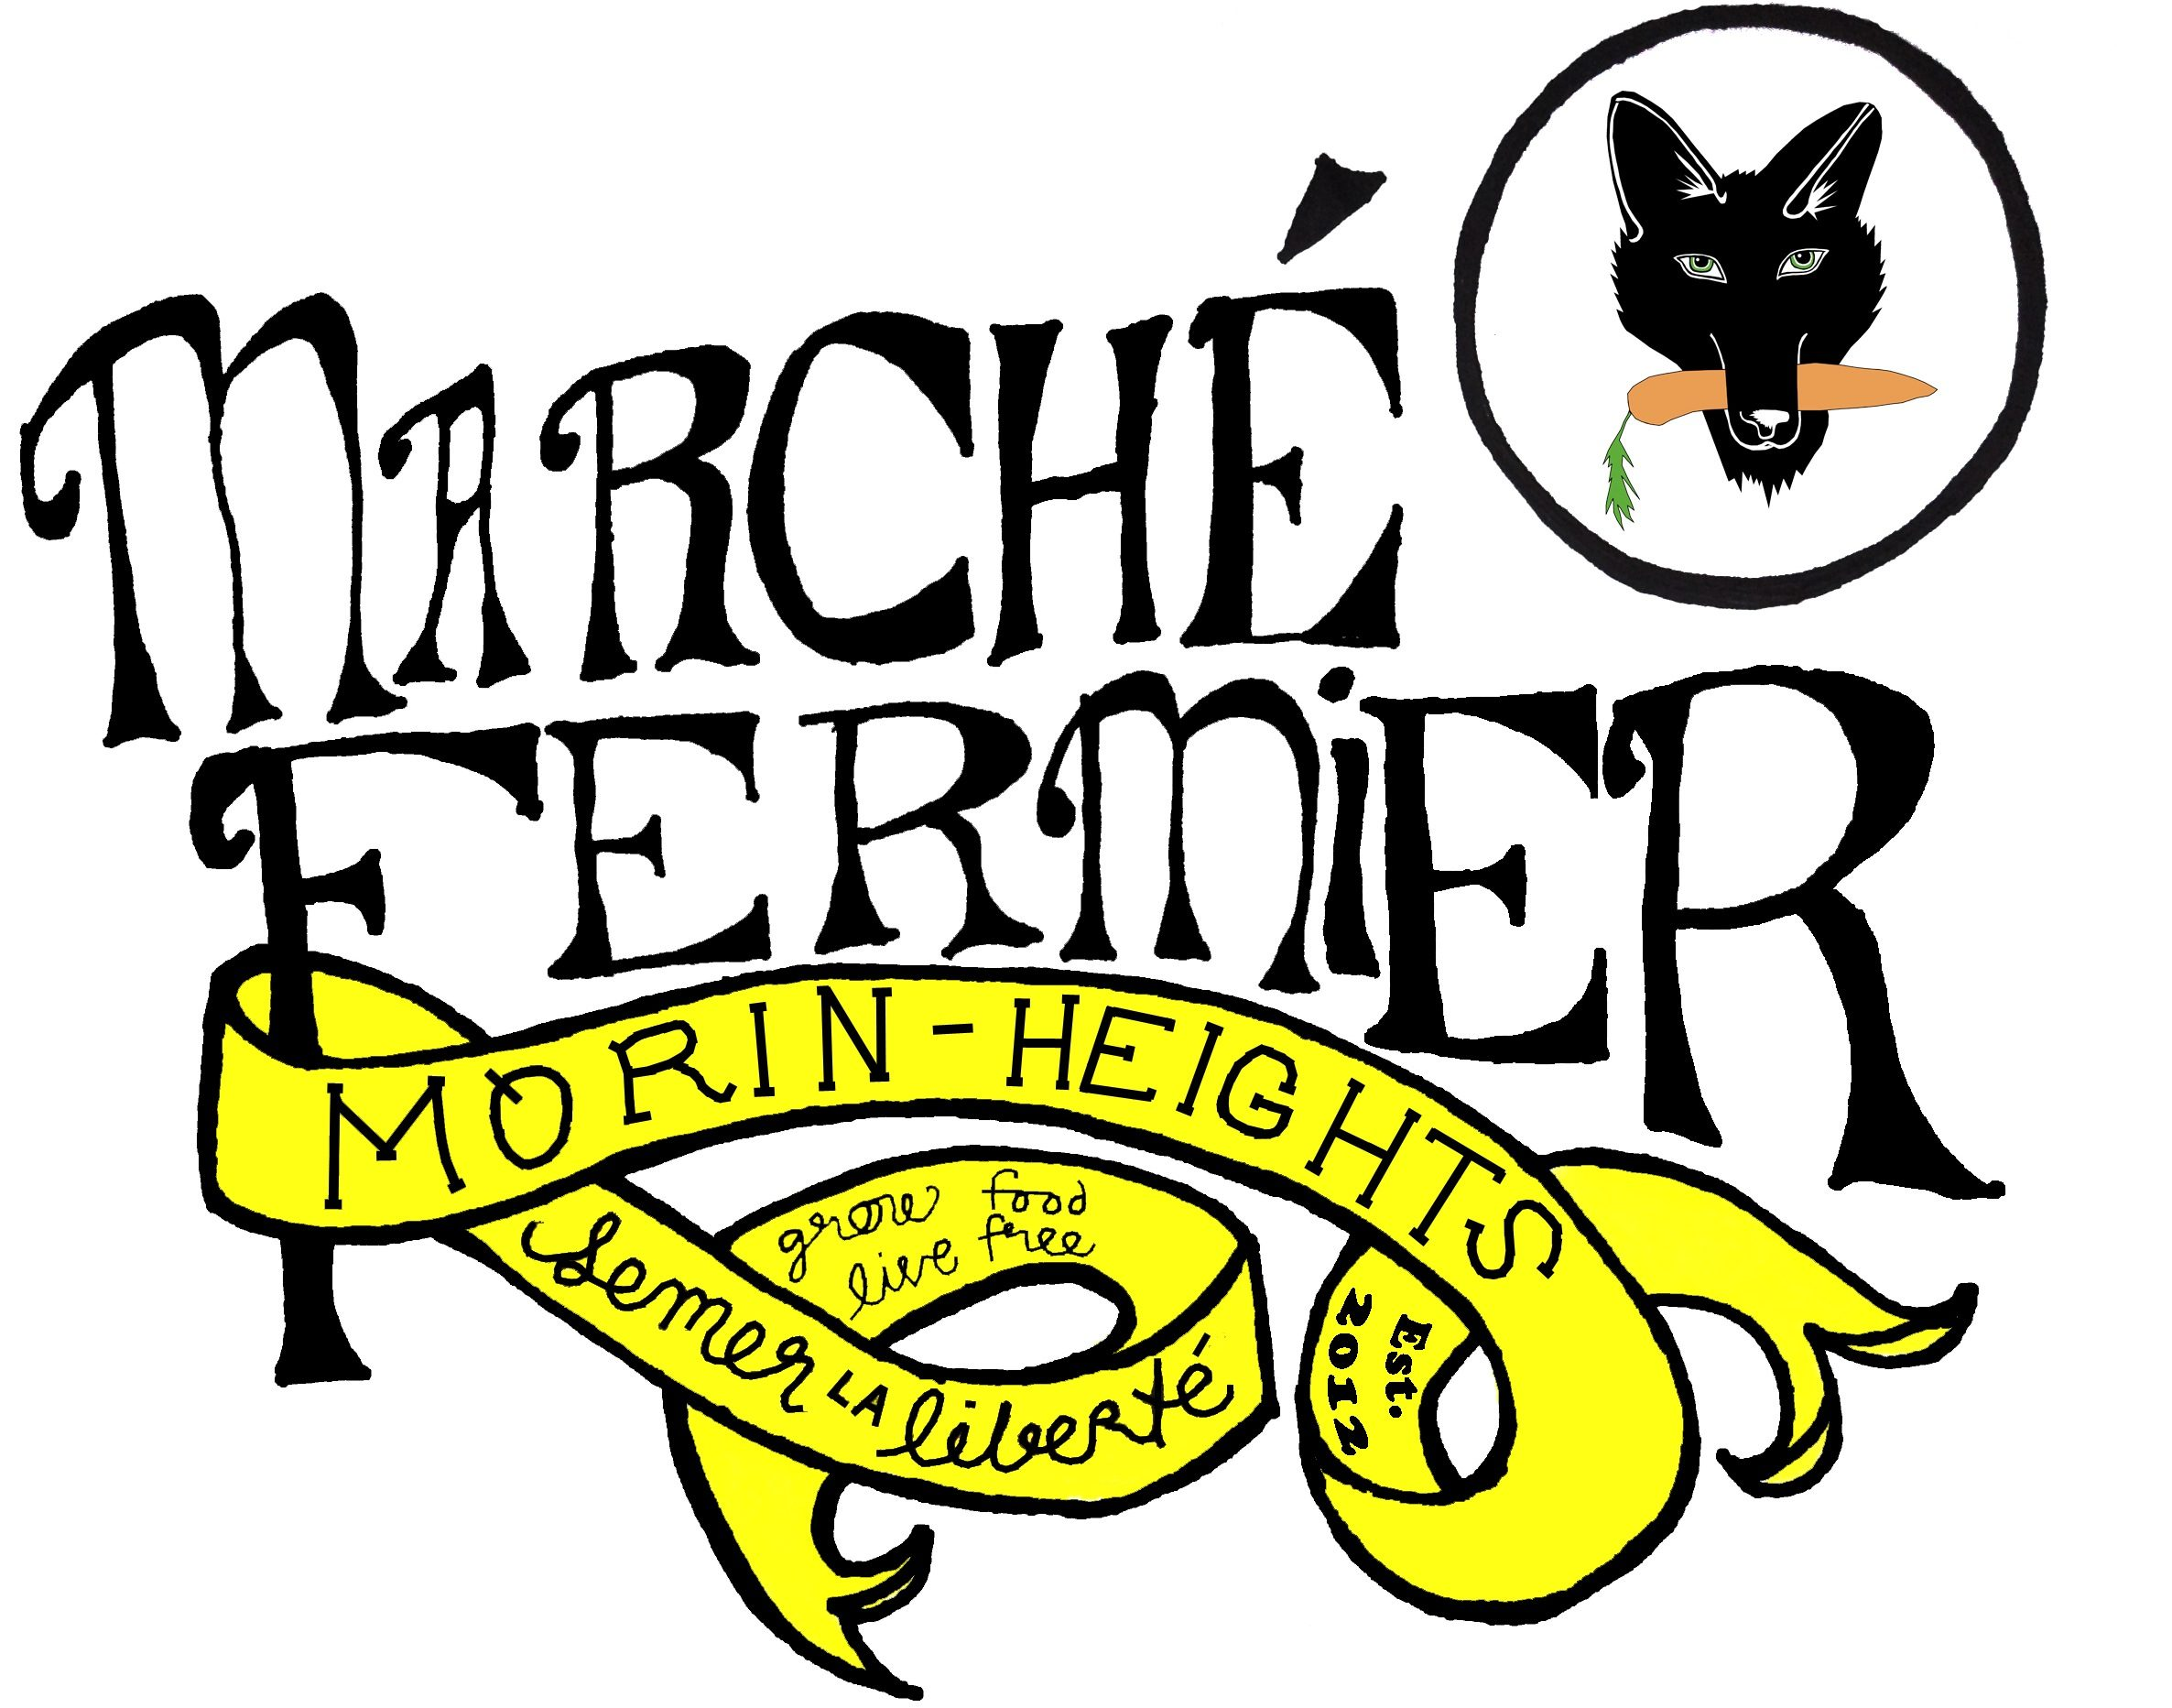 Marché Fermier Morin-Heights